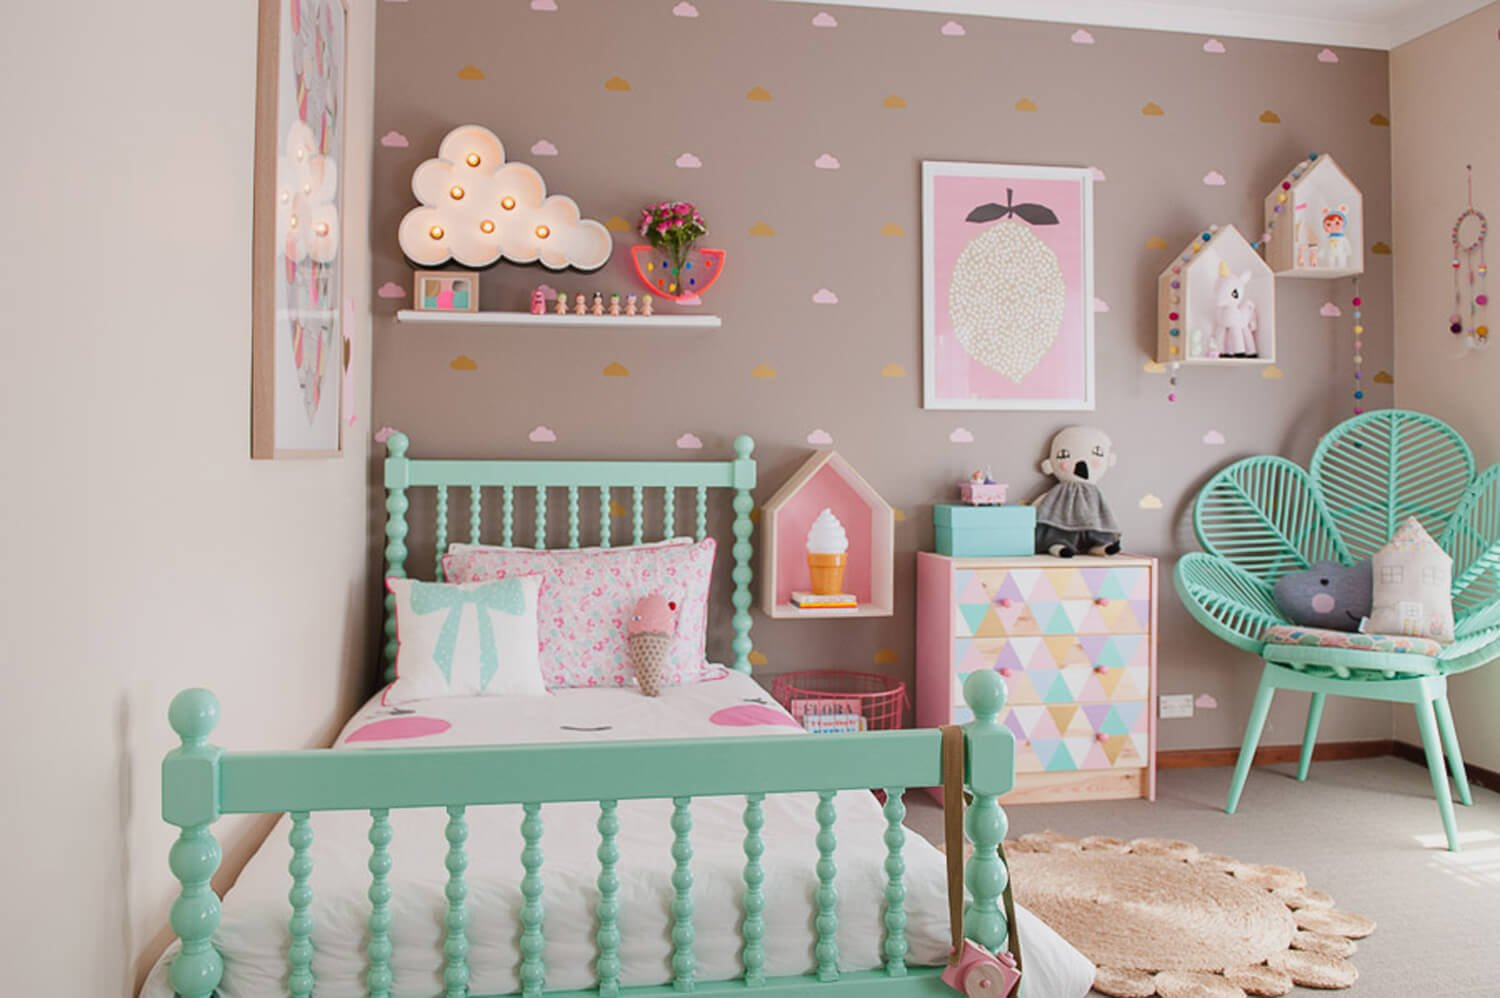 Playful-Kids-Bedroom-by-Danielle-Parisi